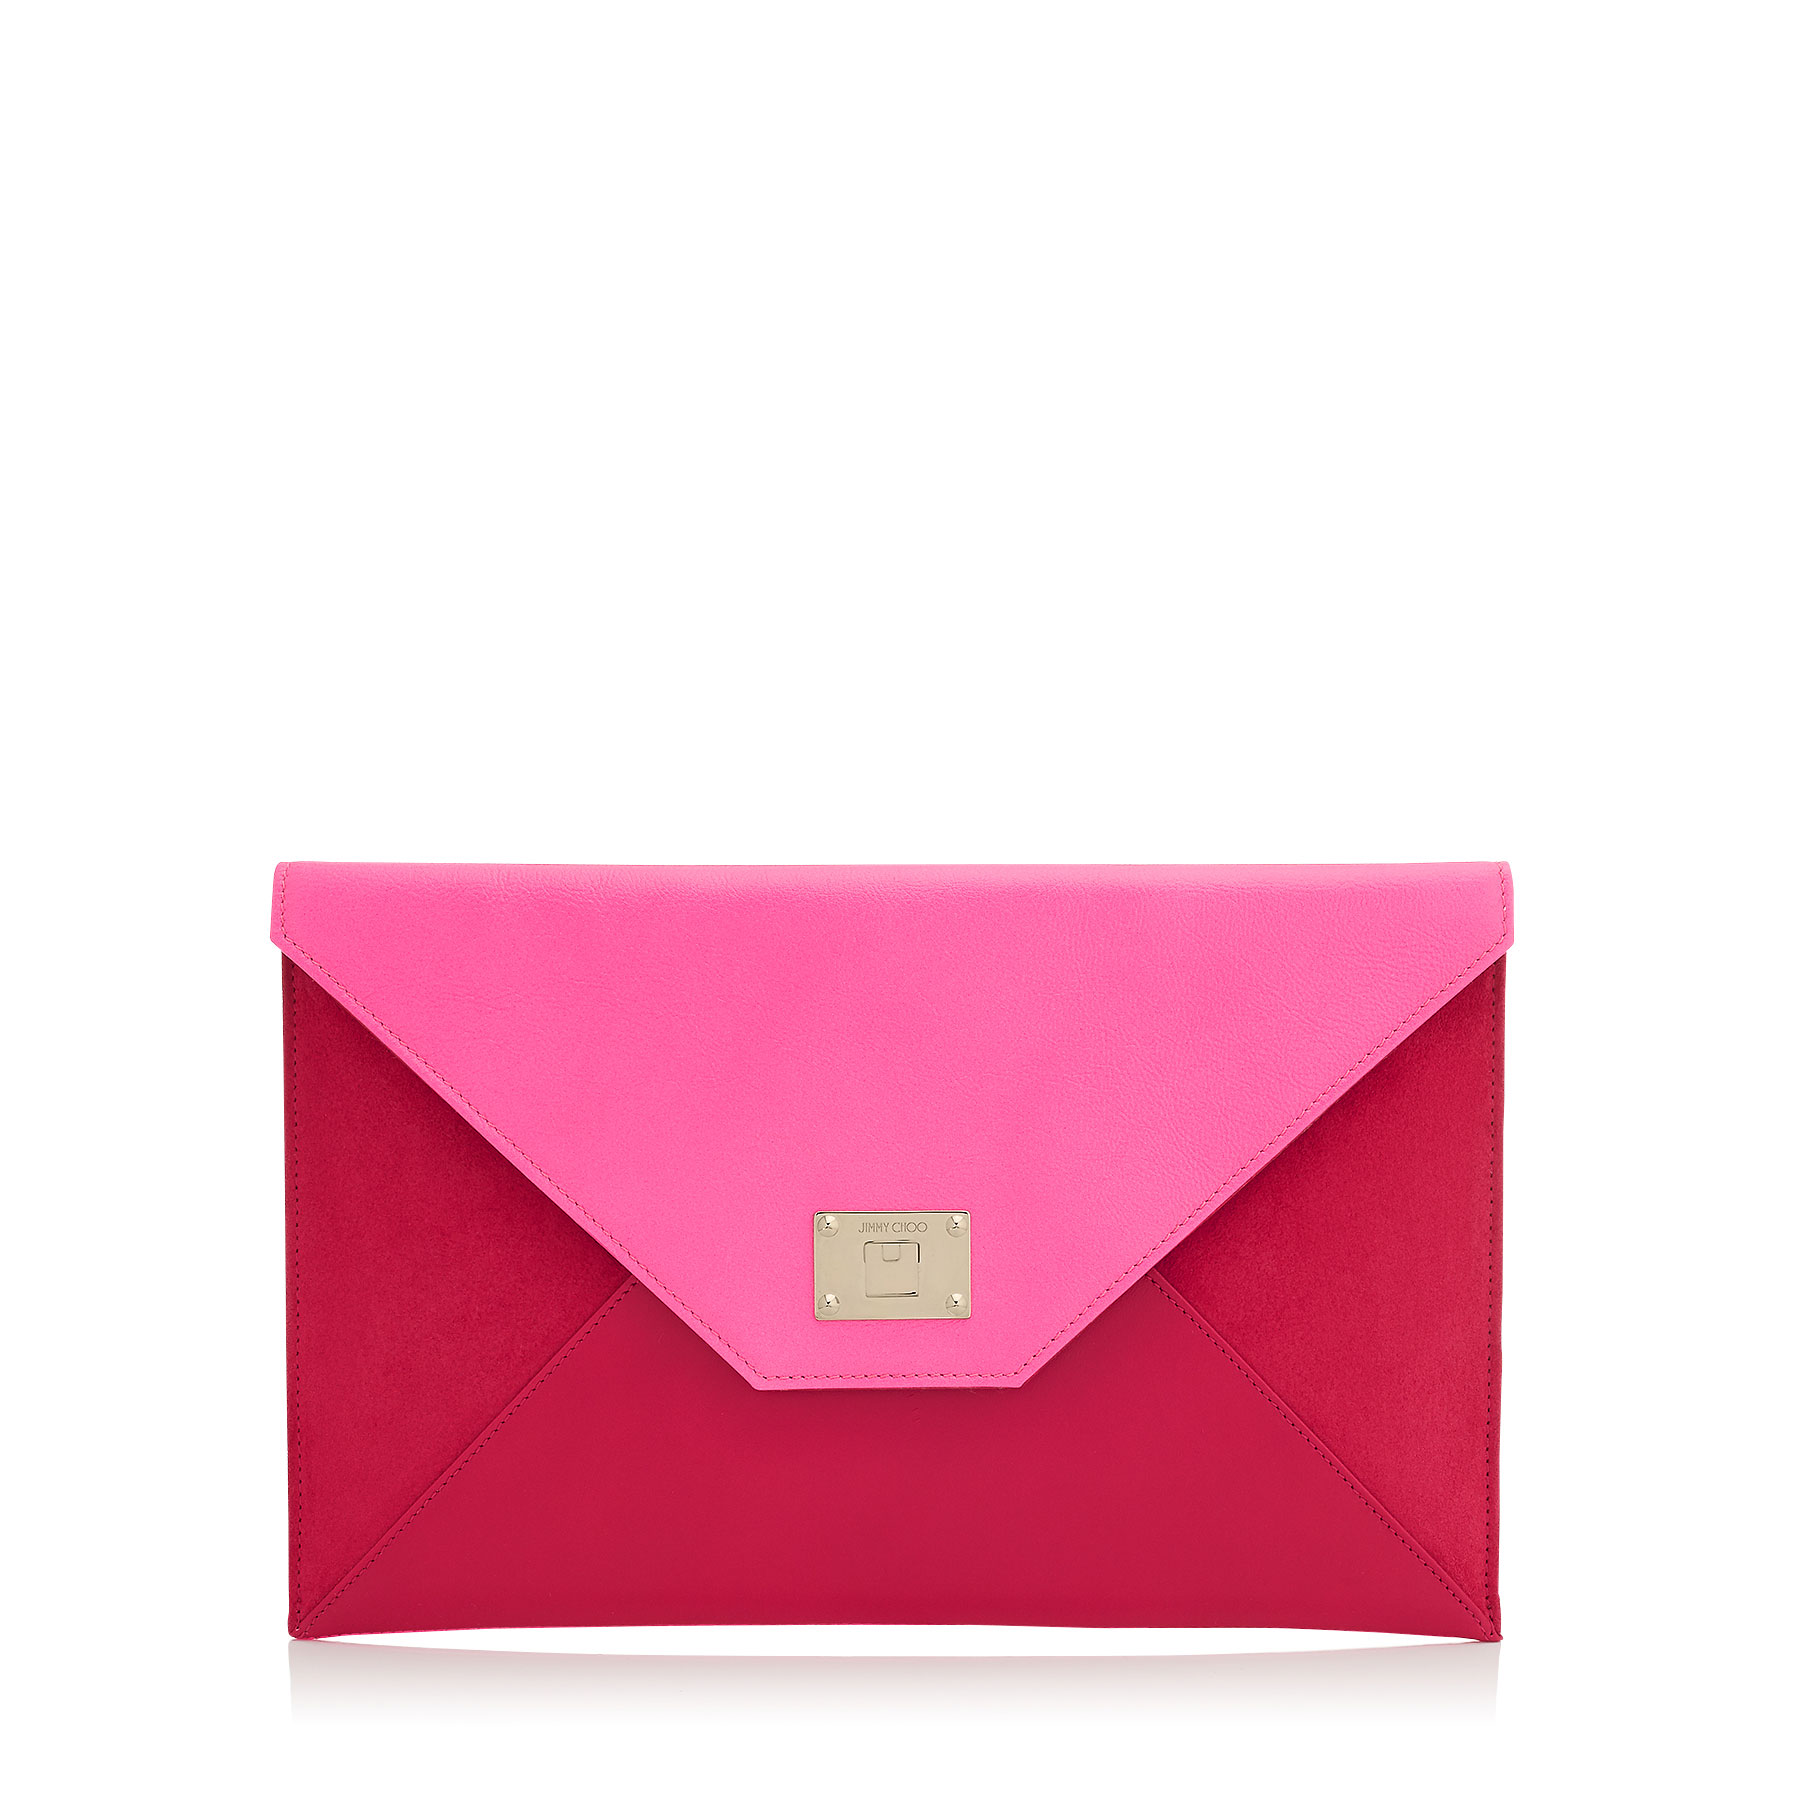 ROSETTA Raspberry Fluorescent Leather and Suede Clutch Bag